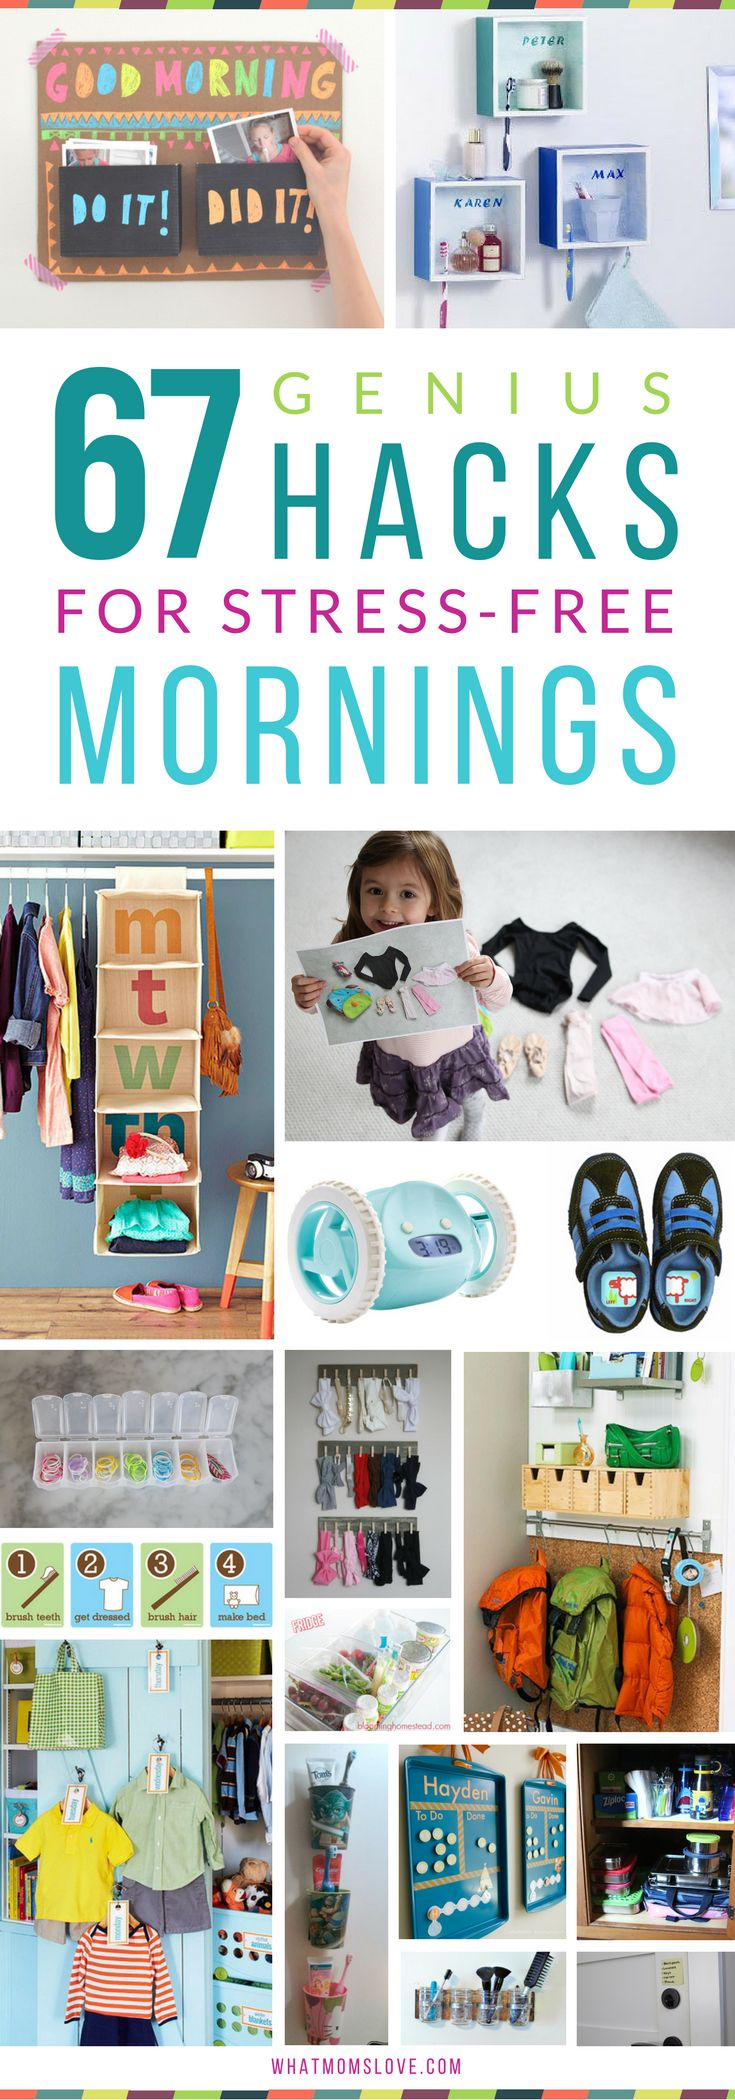 Hacks, Tips & Tricks for Stress-Free Mornings with Kids | Organization ideas for back-to-school, including morning routine checklists, clothes organization, command centers, backpack nooks & more! via @whatmomslove